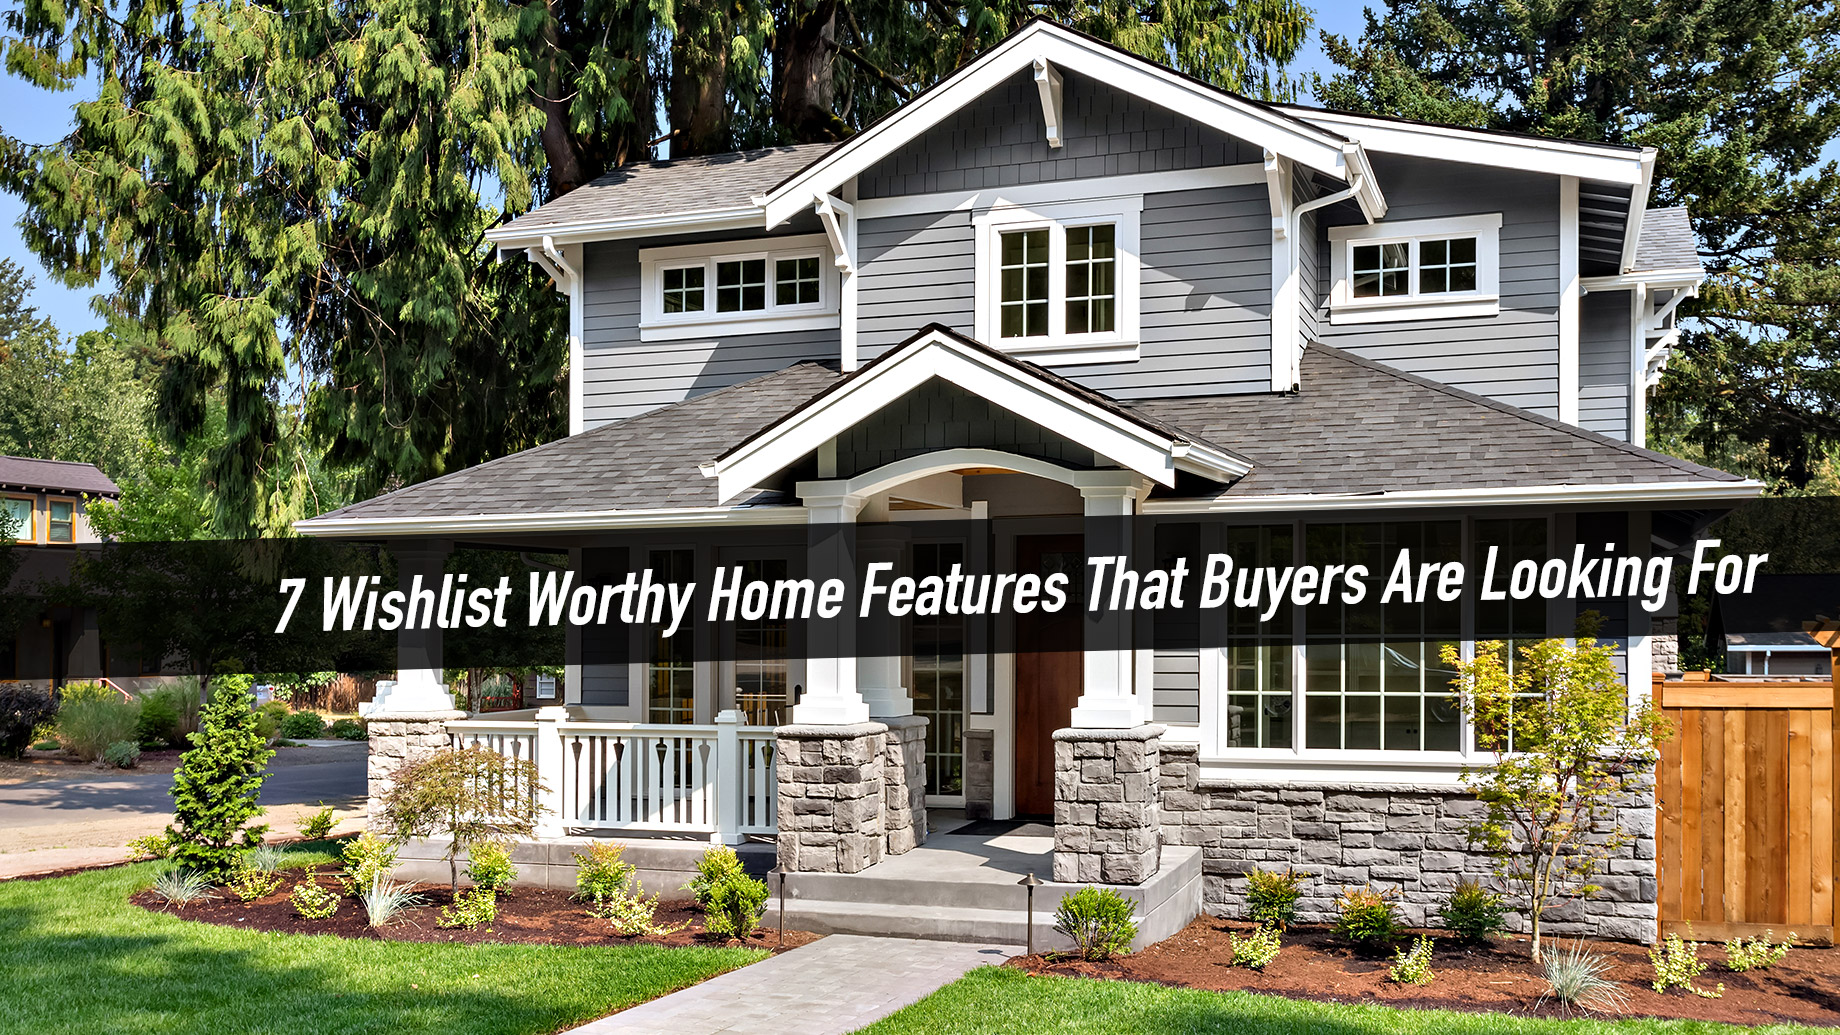 7 Wishlist Worthy Home Features That Buyers Are Looking For